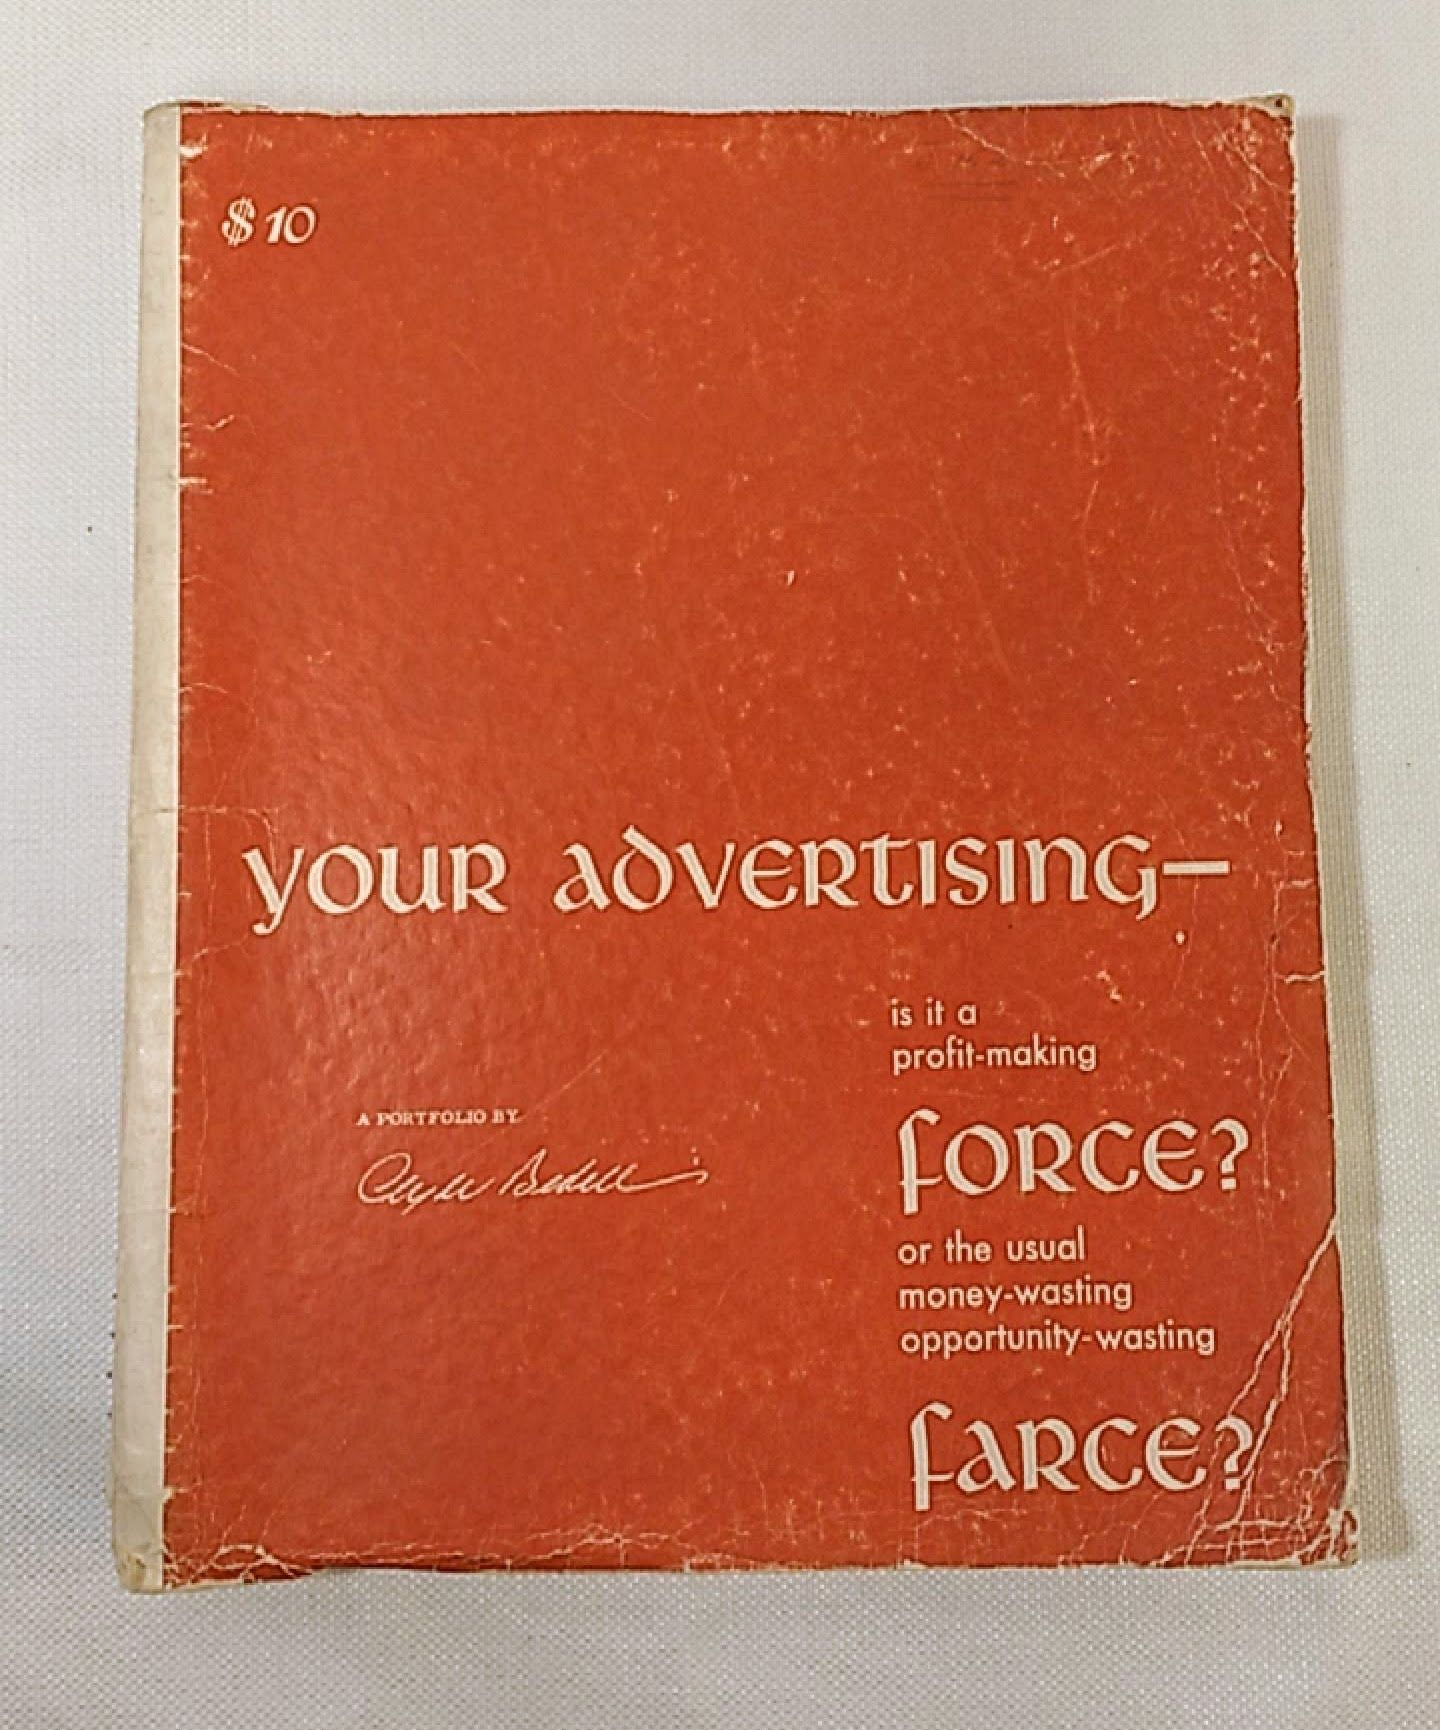 Image for Your Advertising - is it a profit-making force? or the usual money-wasting opportunity-wasting farce? A Portfolio by Clyde Bedell